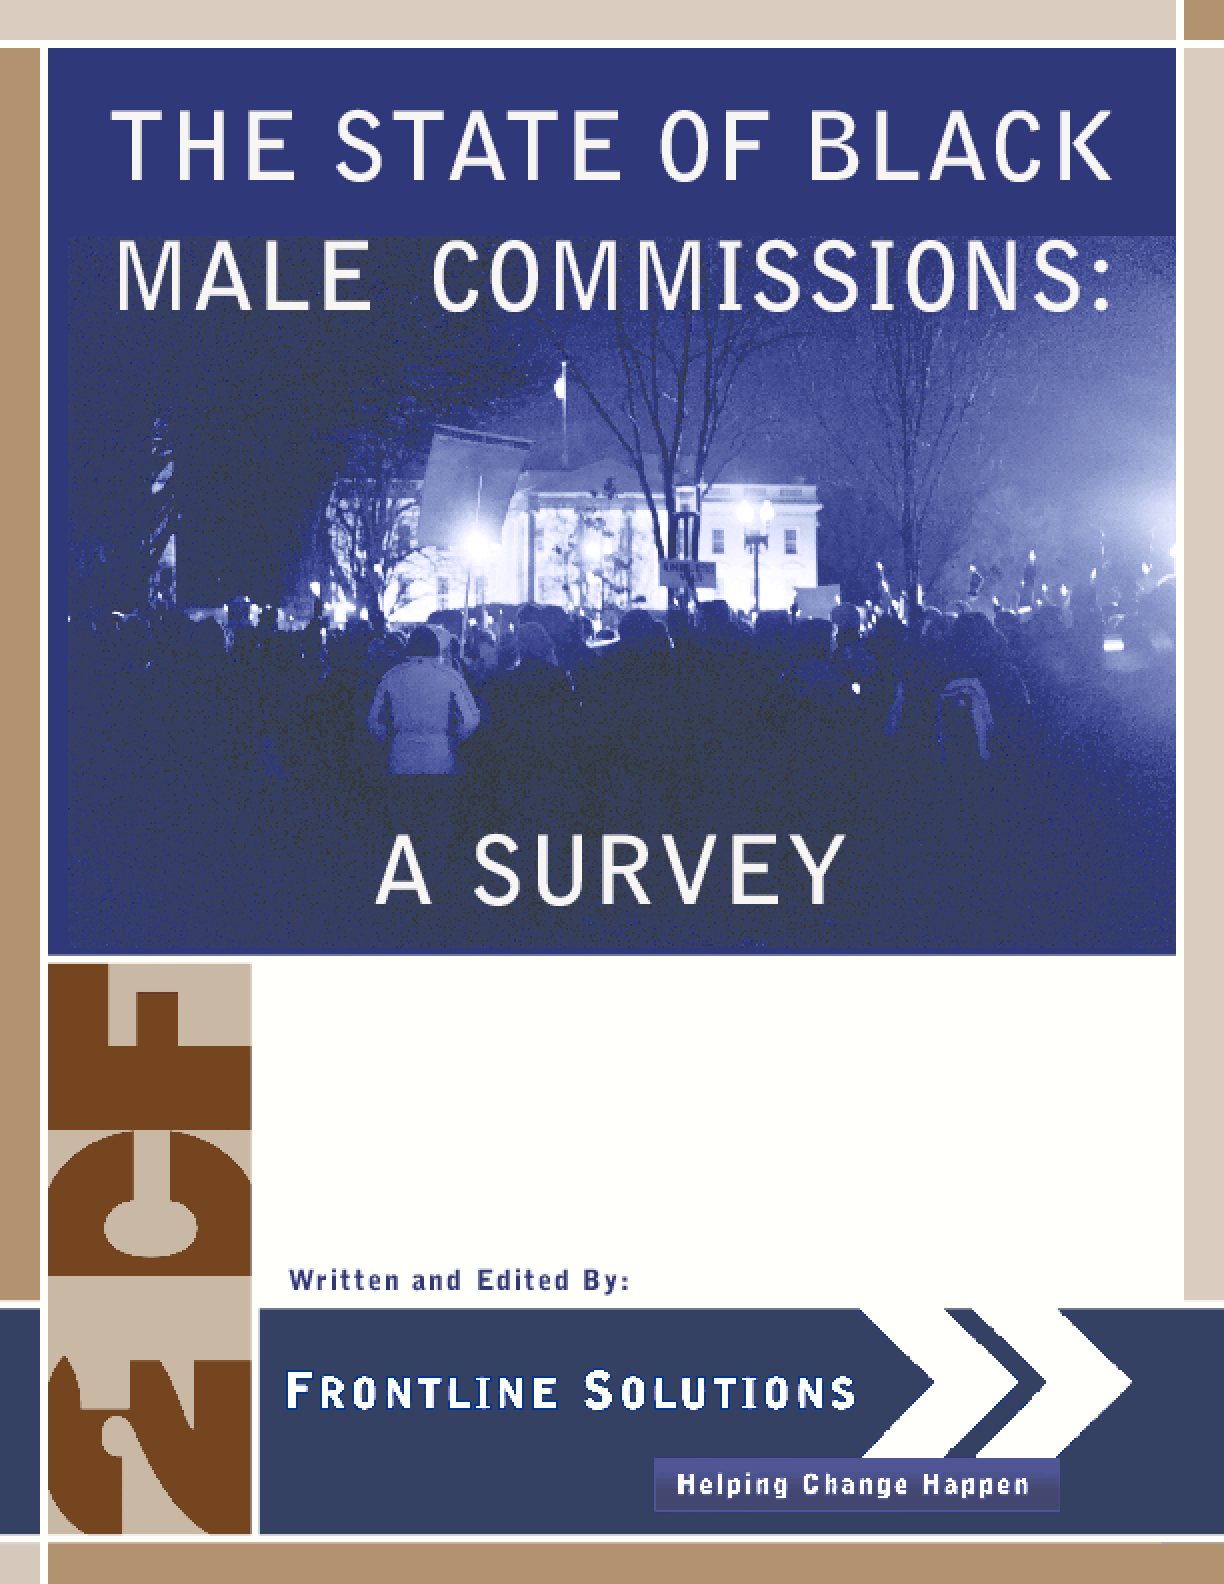 The State of Black Male Commissions: A Survey